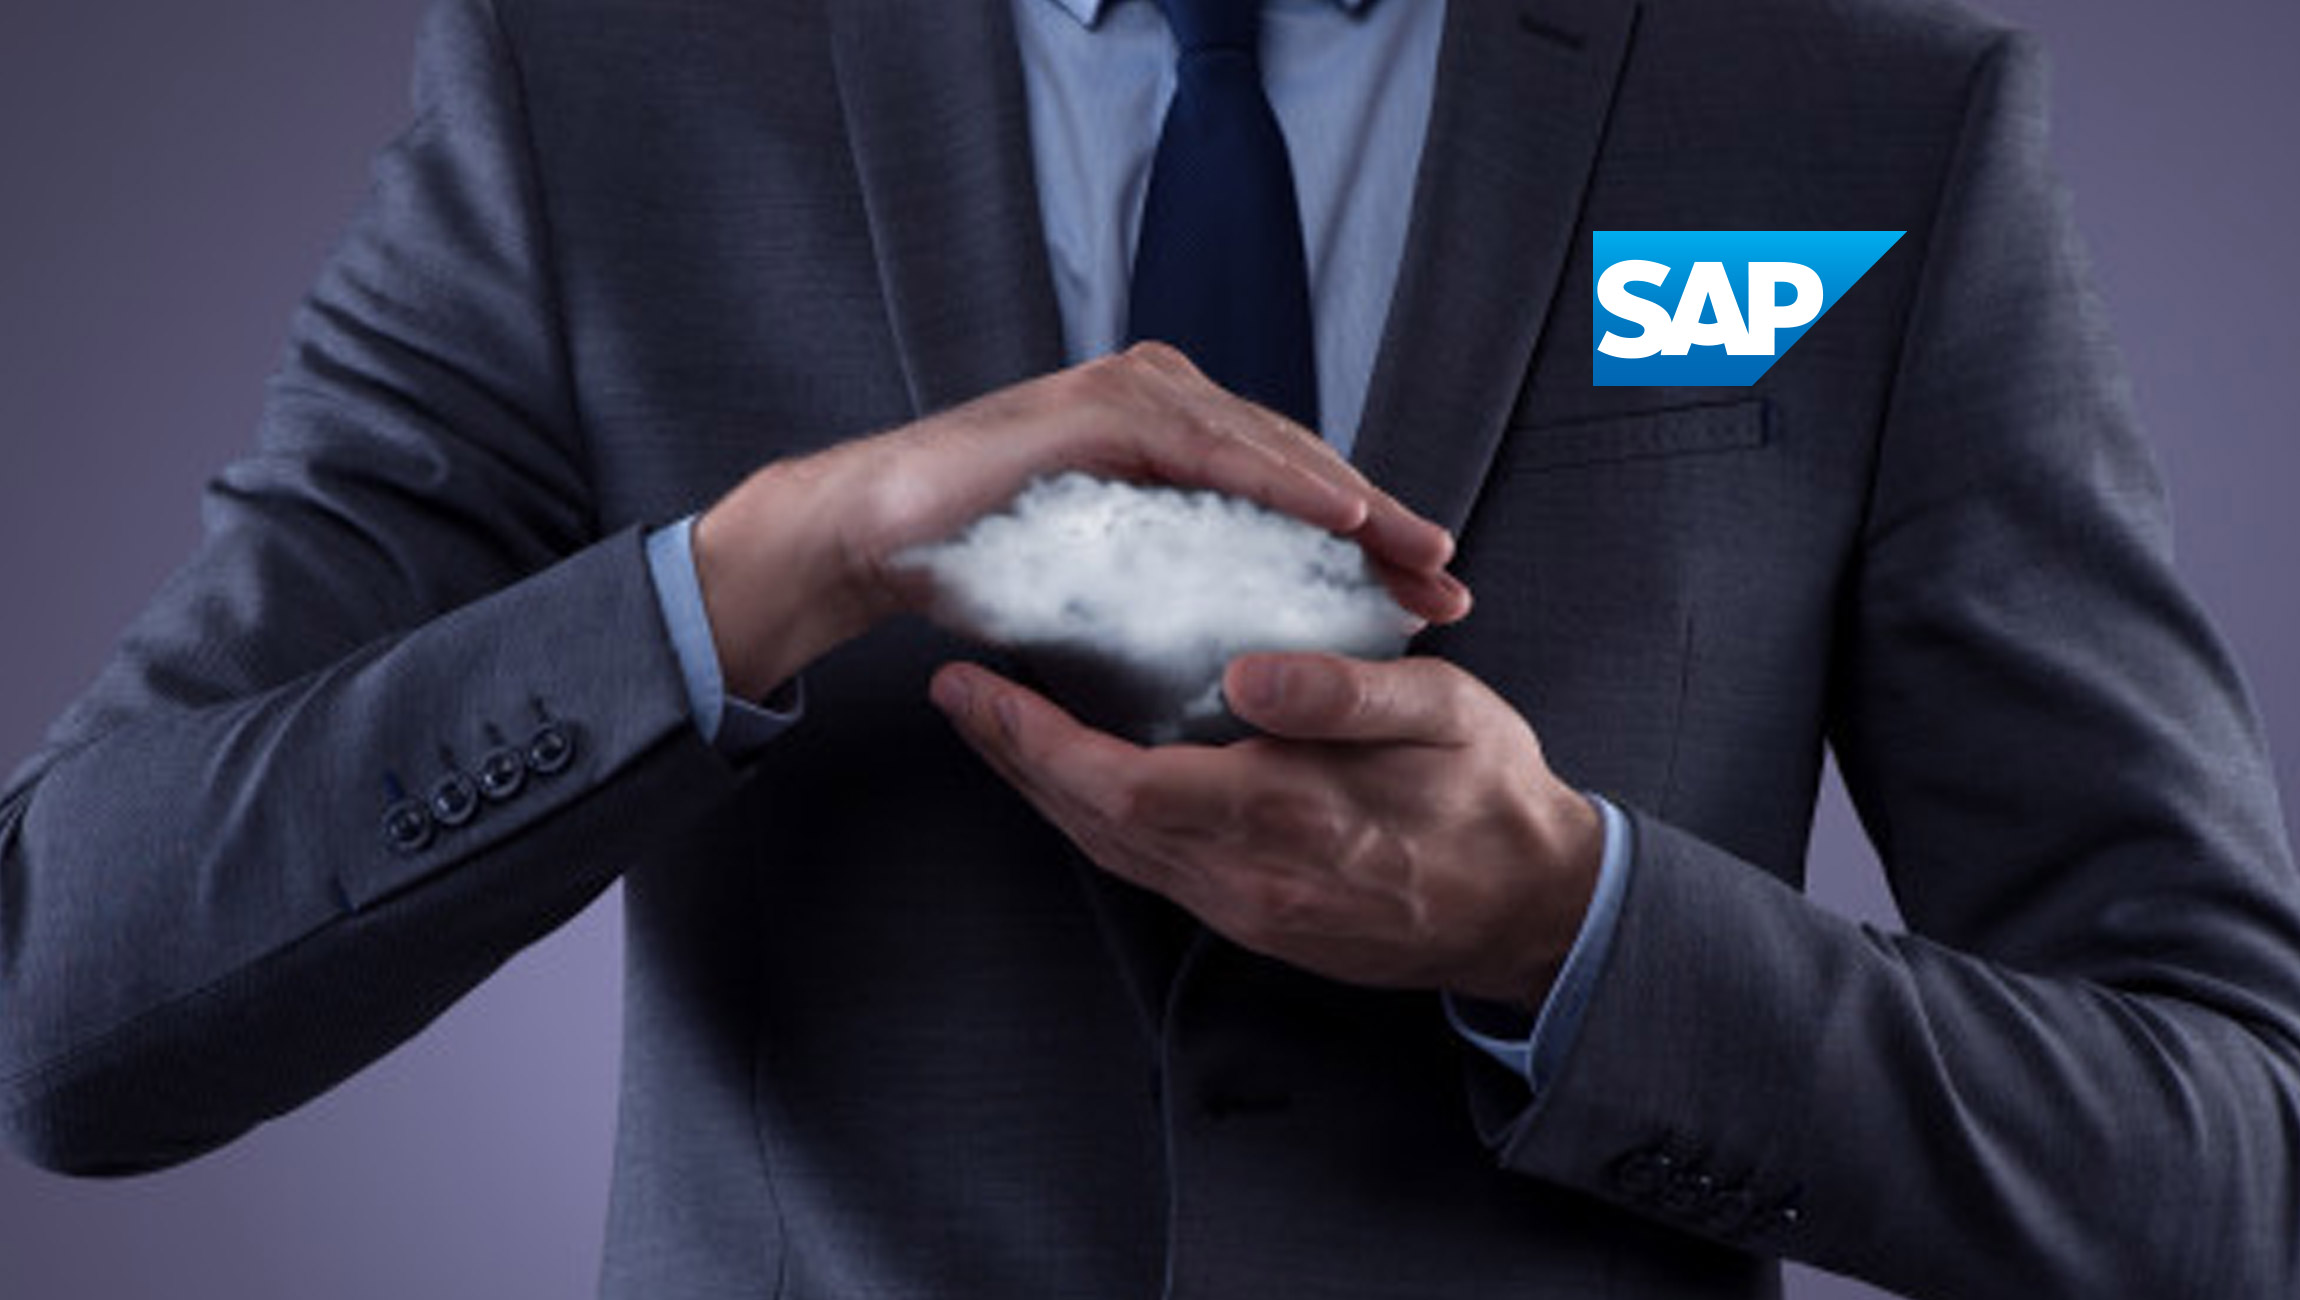 SAP-Cloud-solutions-platform